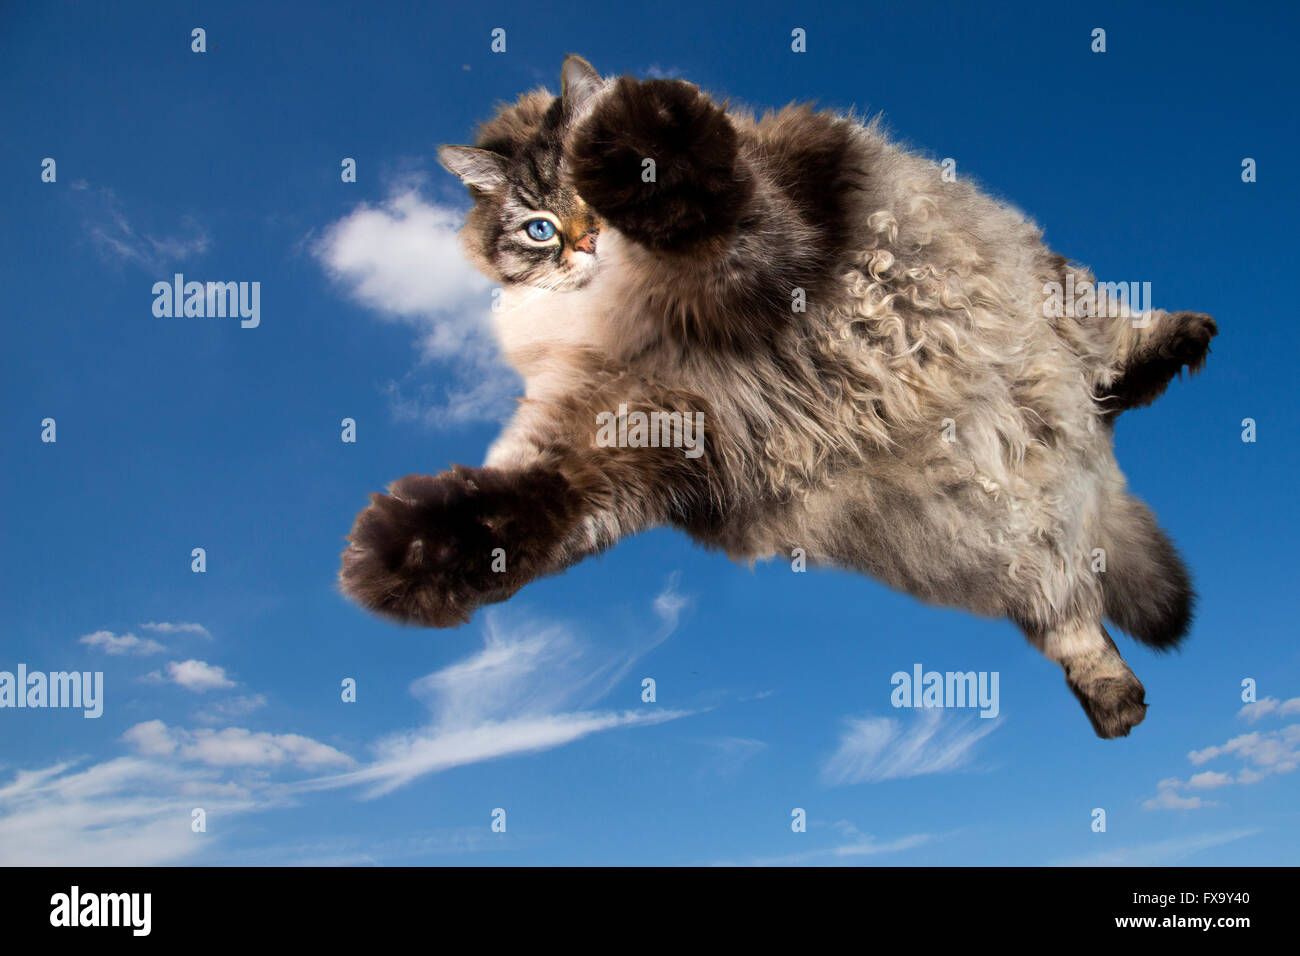 funny cat flying in the sky - Stock Image